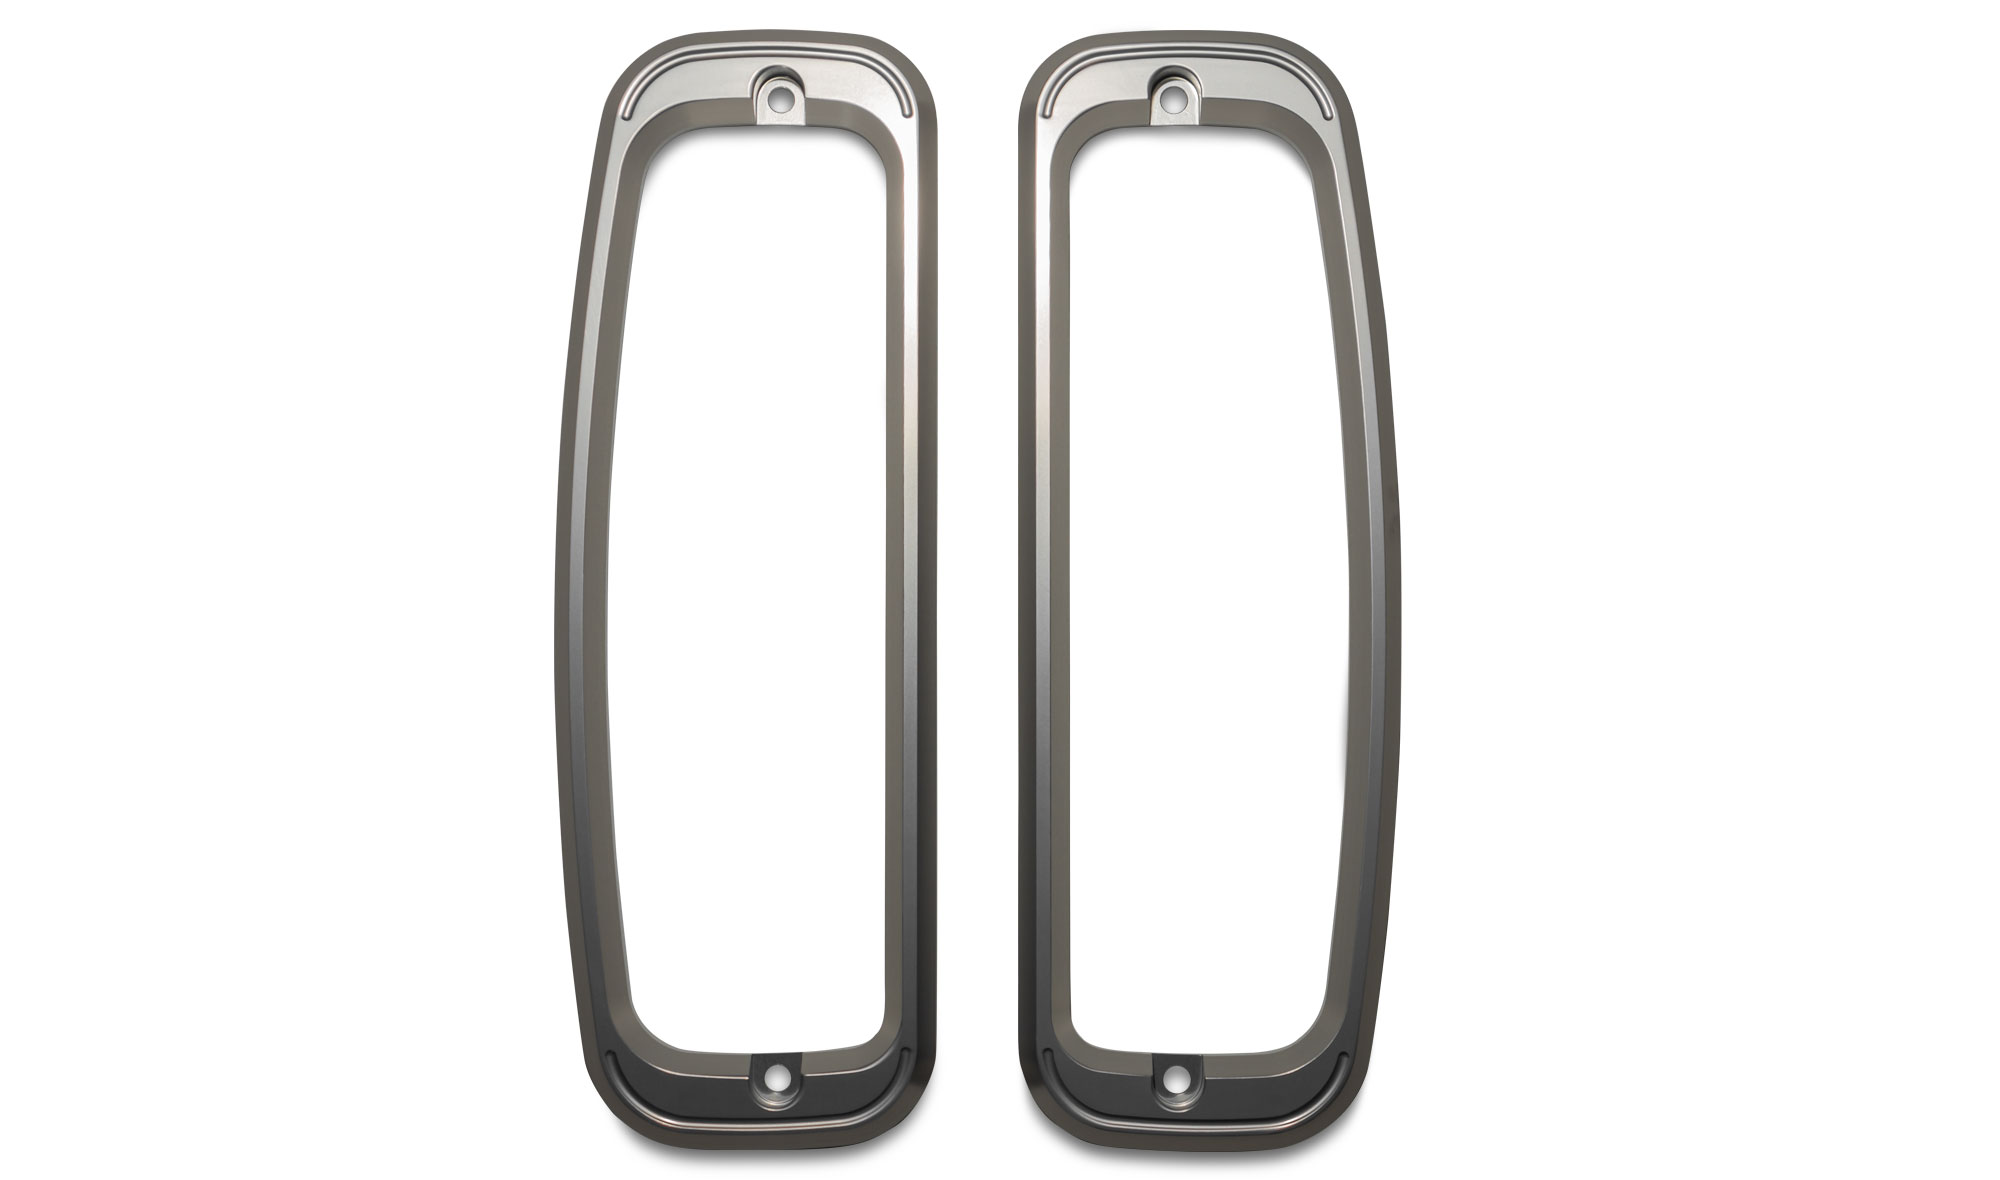 Billet Aluminum Tail Light Bezels, pair